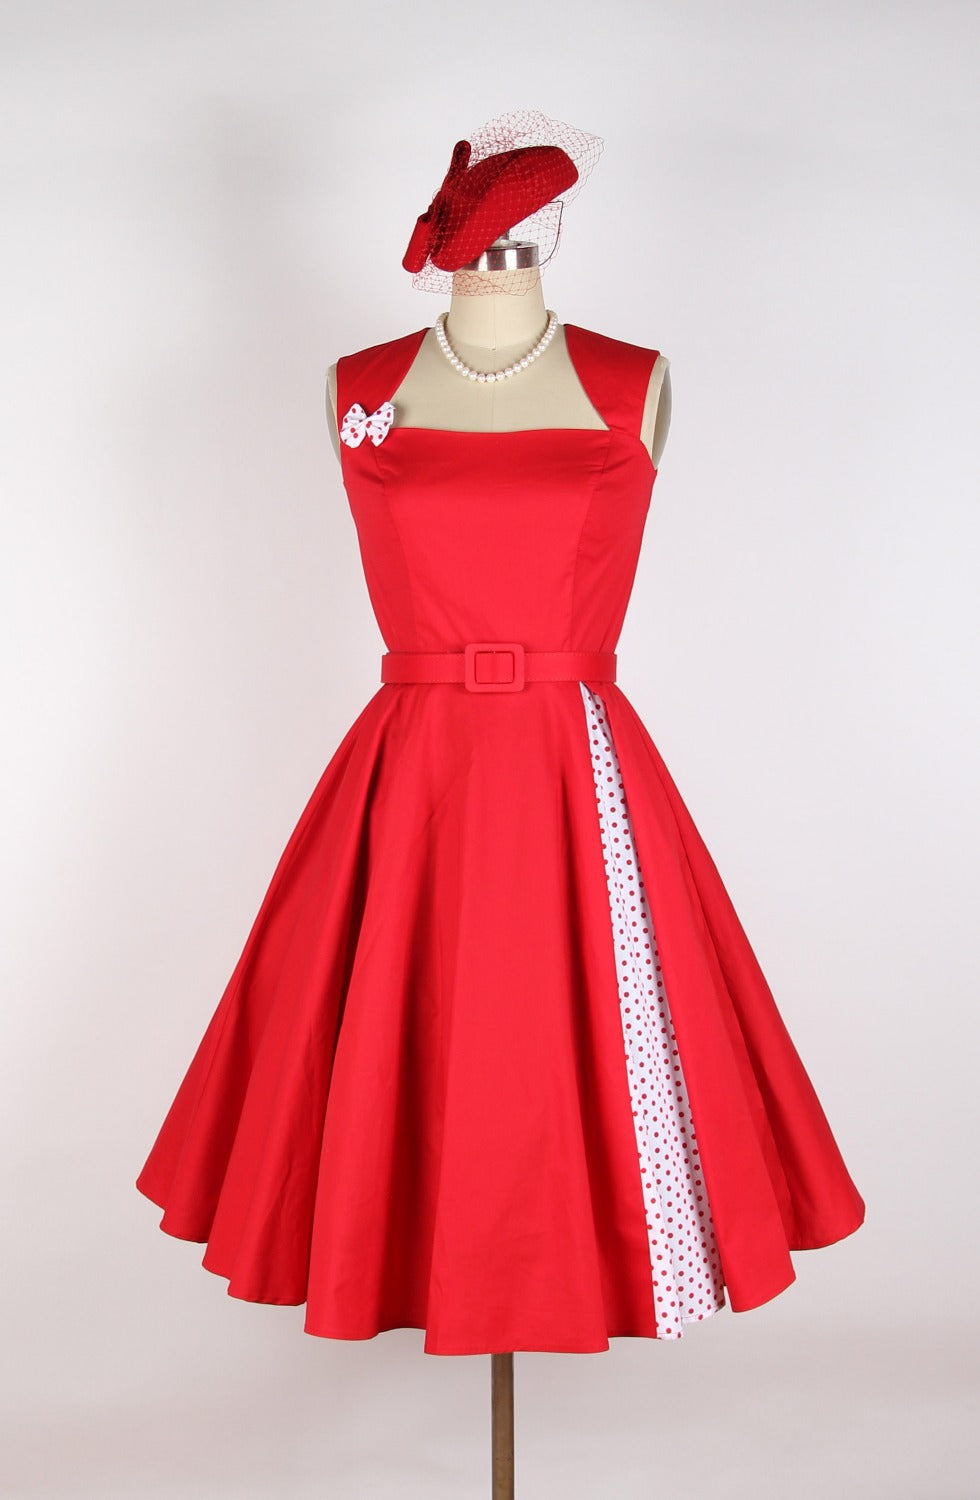 Red Rose with Polka Dot Audrey Hepburn Style Dress